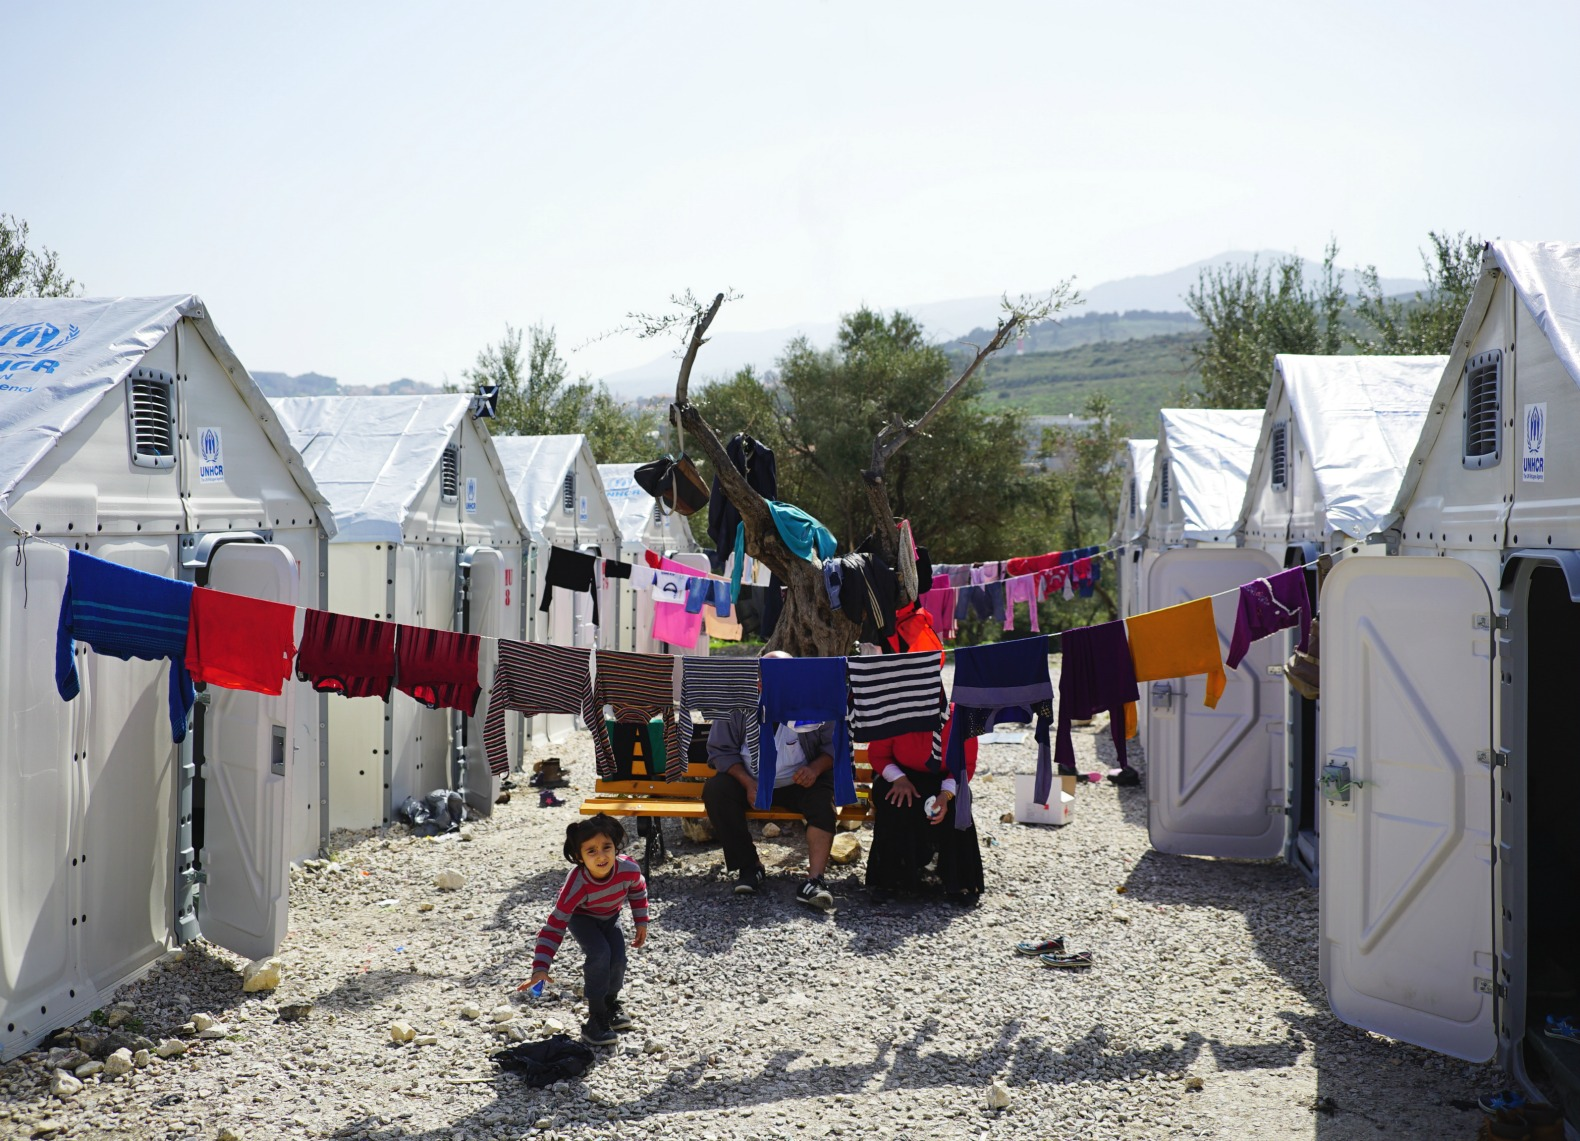 Ikea flat-pack refugee shelters awarded Design of the Year